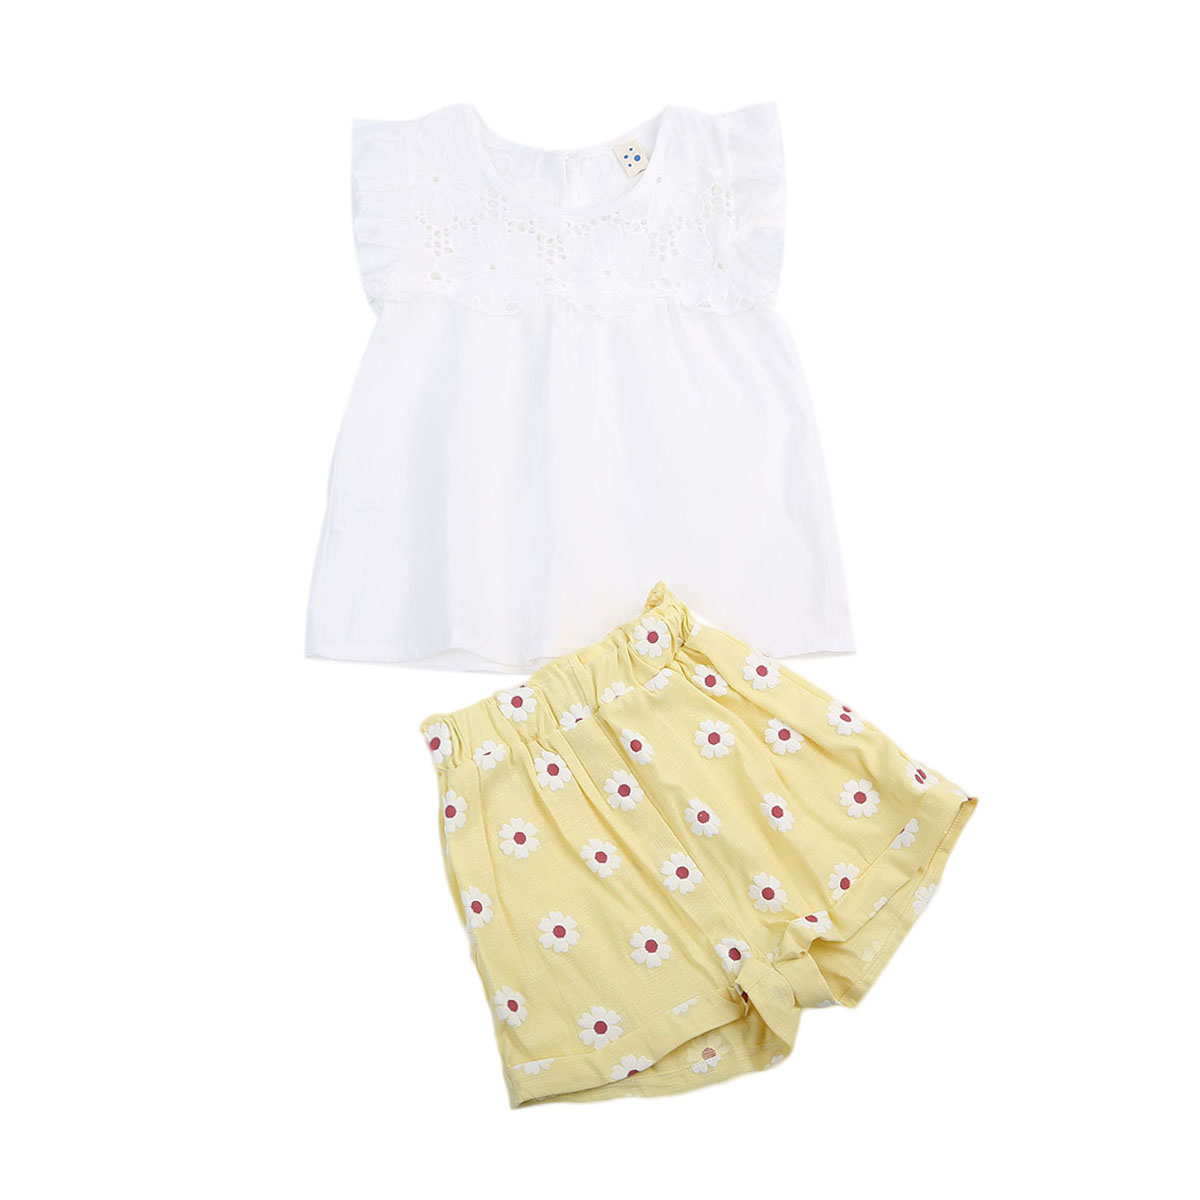 New Style Pretty Toddler Kids Baby Girls Clothes Summer Lace Sleeveless Tops T-shirt+Pants Shorts clothing Set 2-7Y